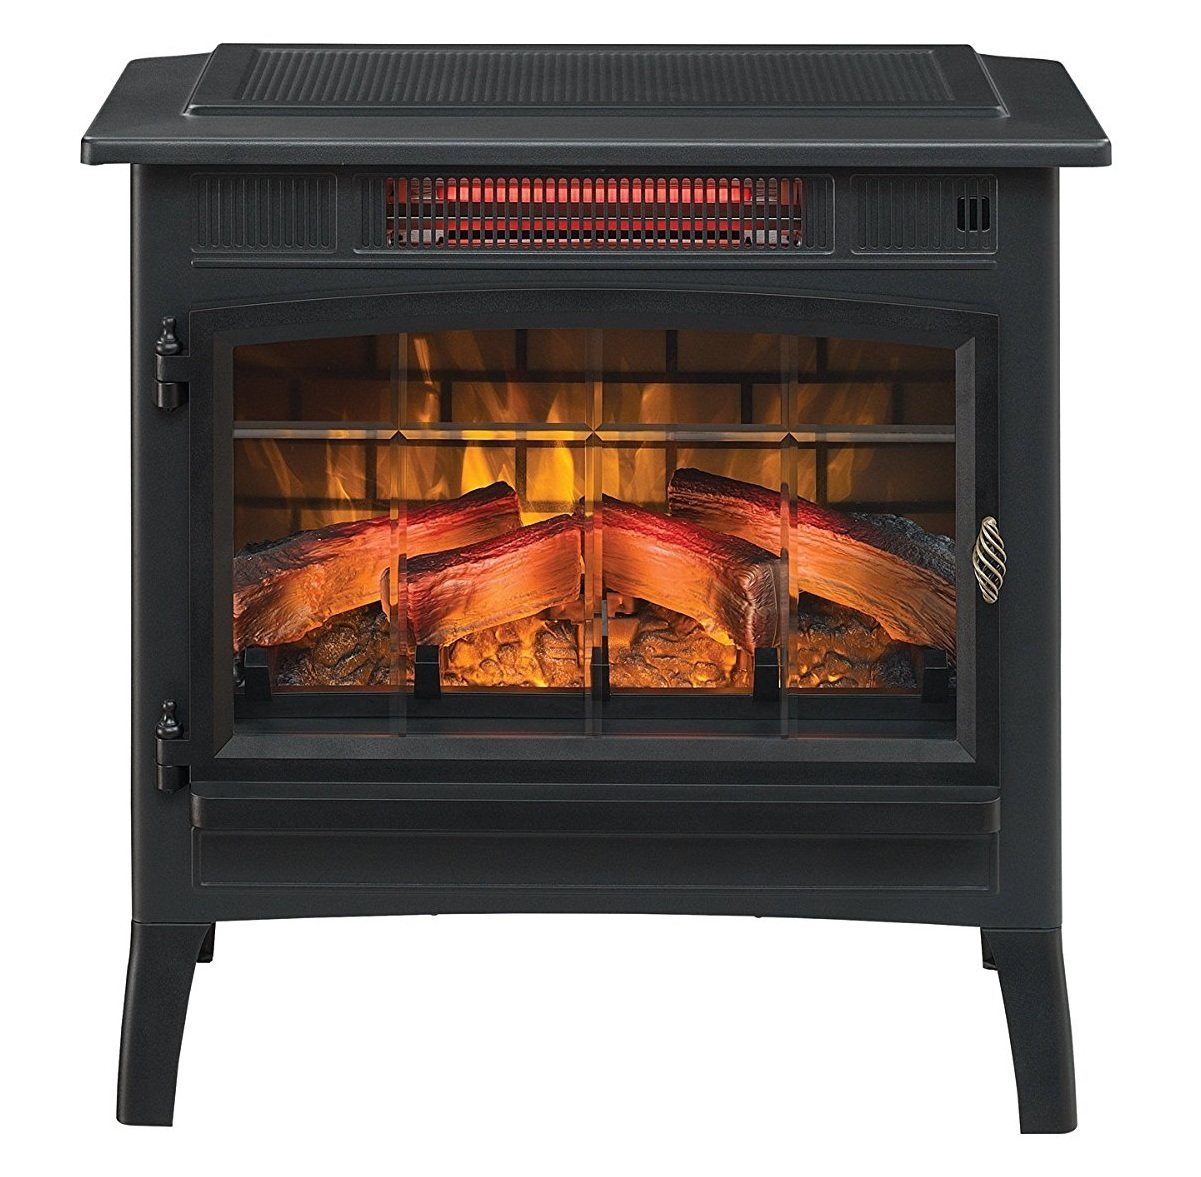 Duraflame Infrared Electric Fireplace Stove